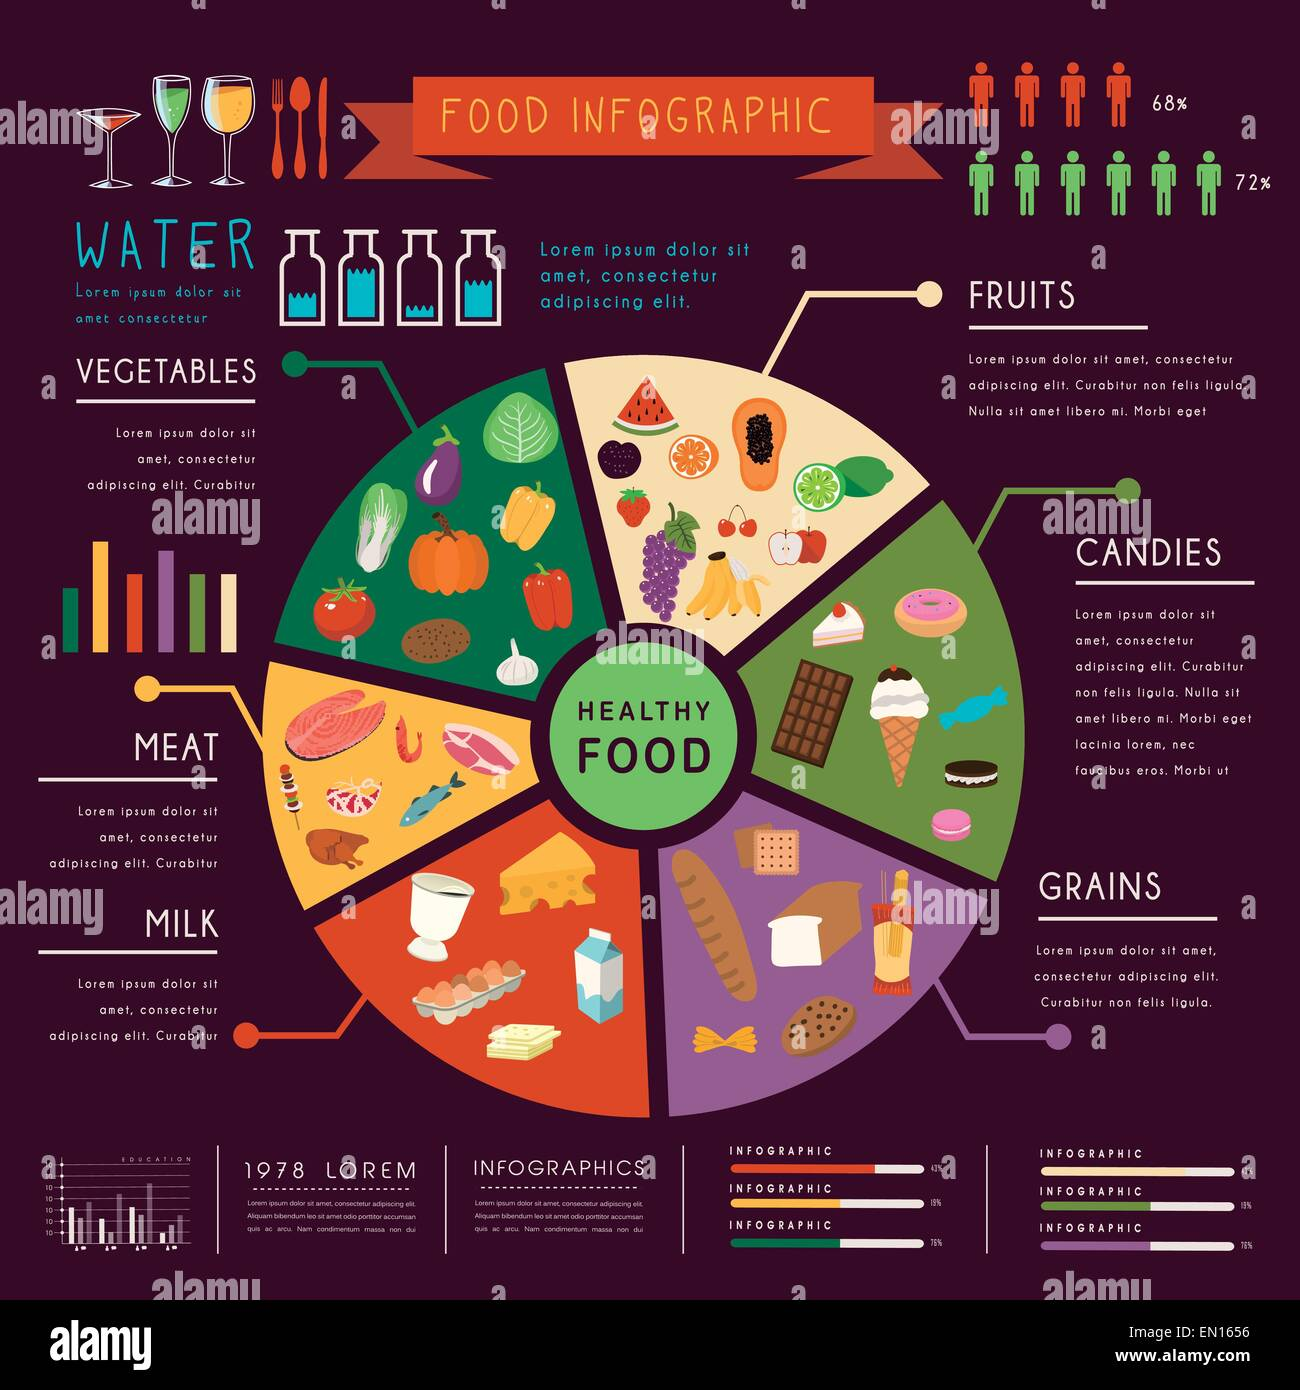 Lovely pie chart food infographic over purple background stock lovely pie chart food infographic over purple background nvjuhfo Image collections